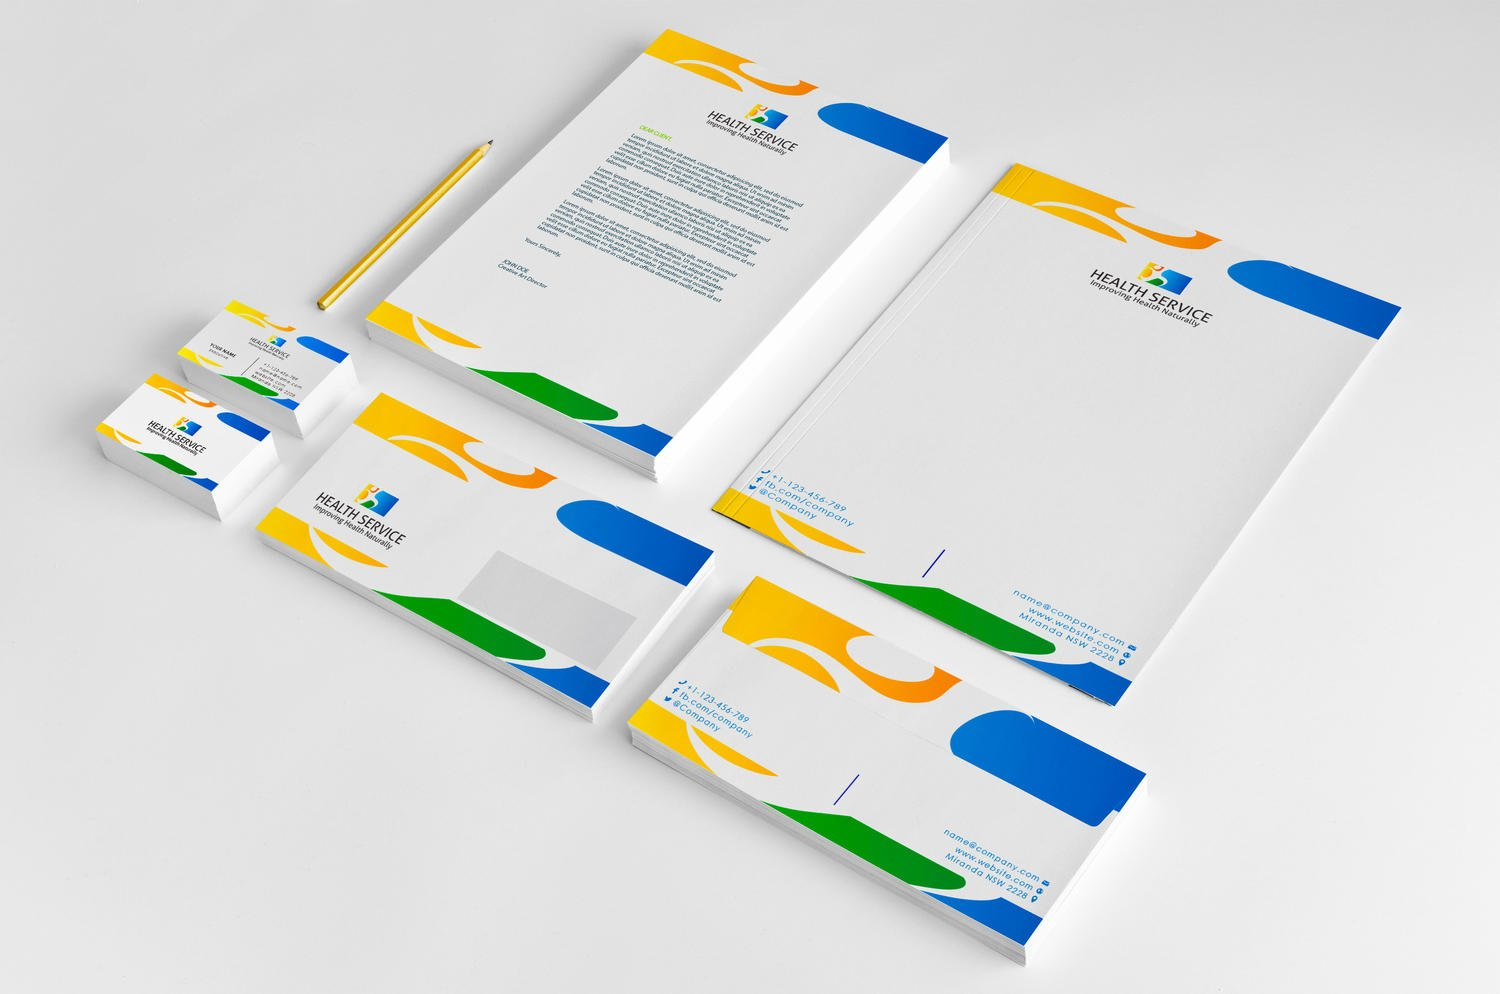 Professional Corporate Stationery Design by shujaktk - 69231